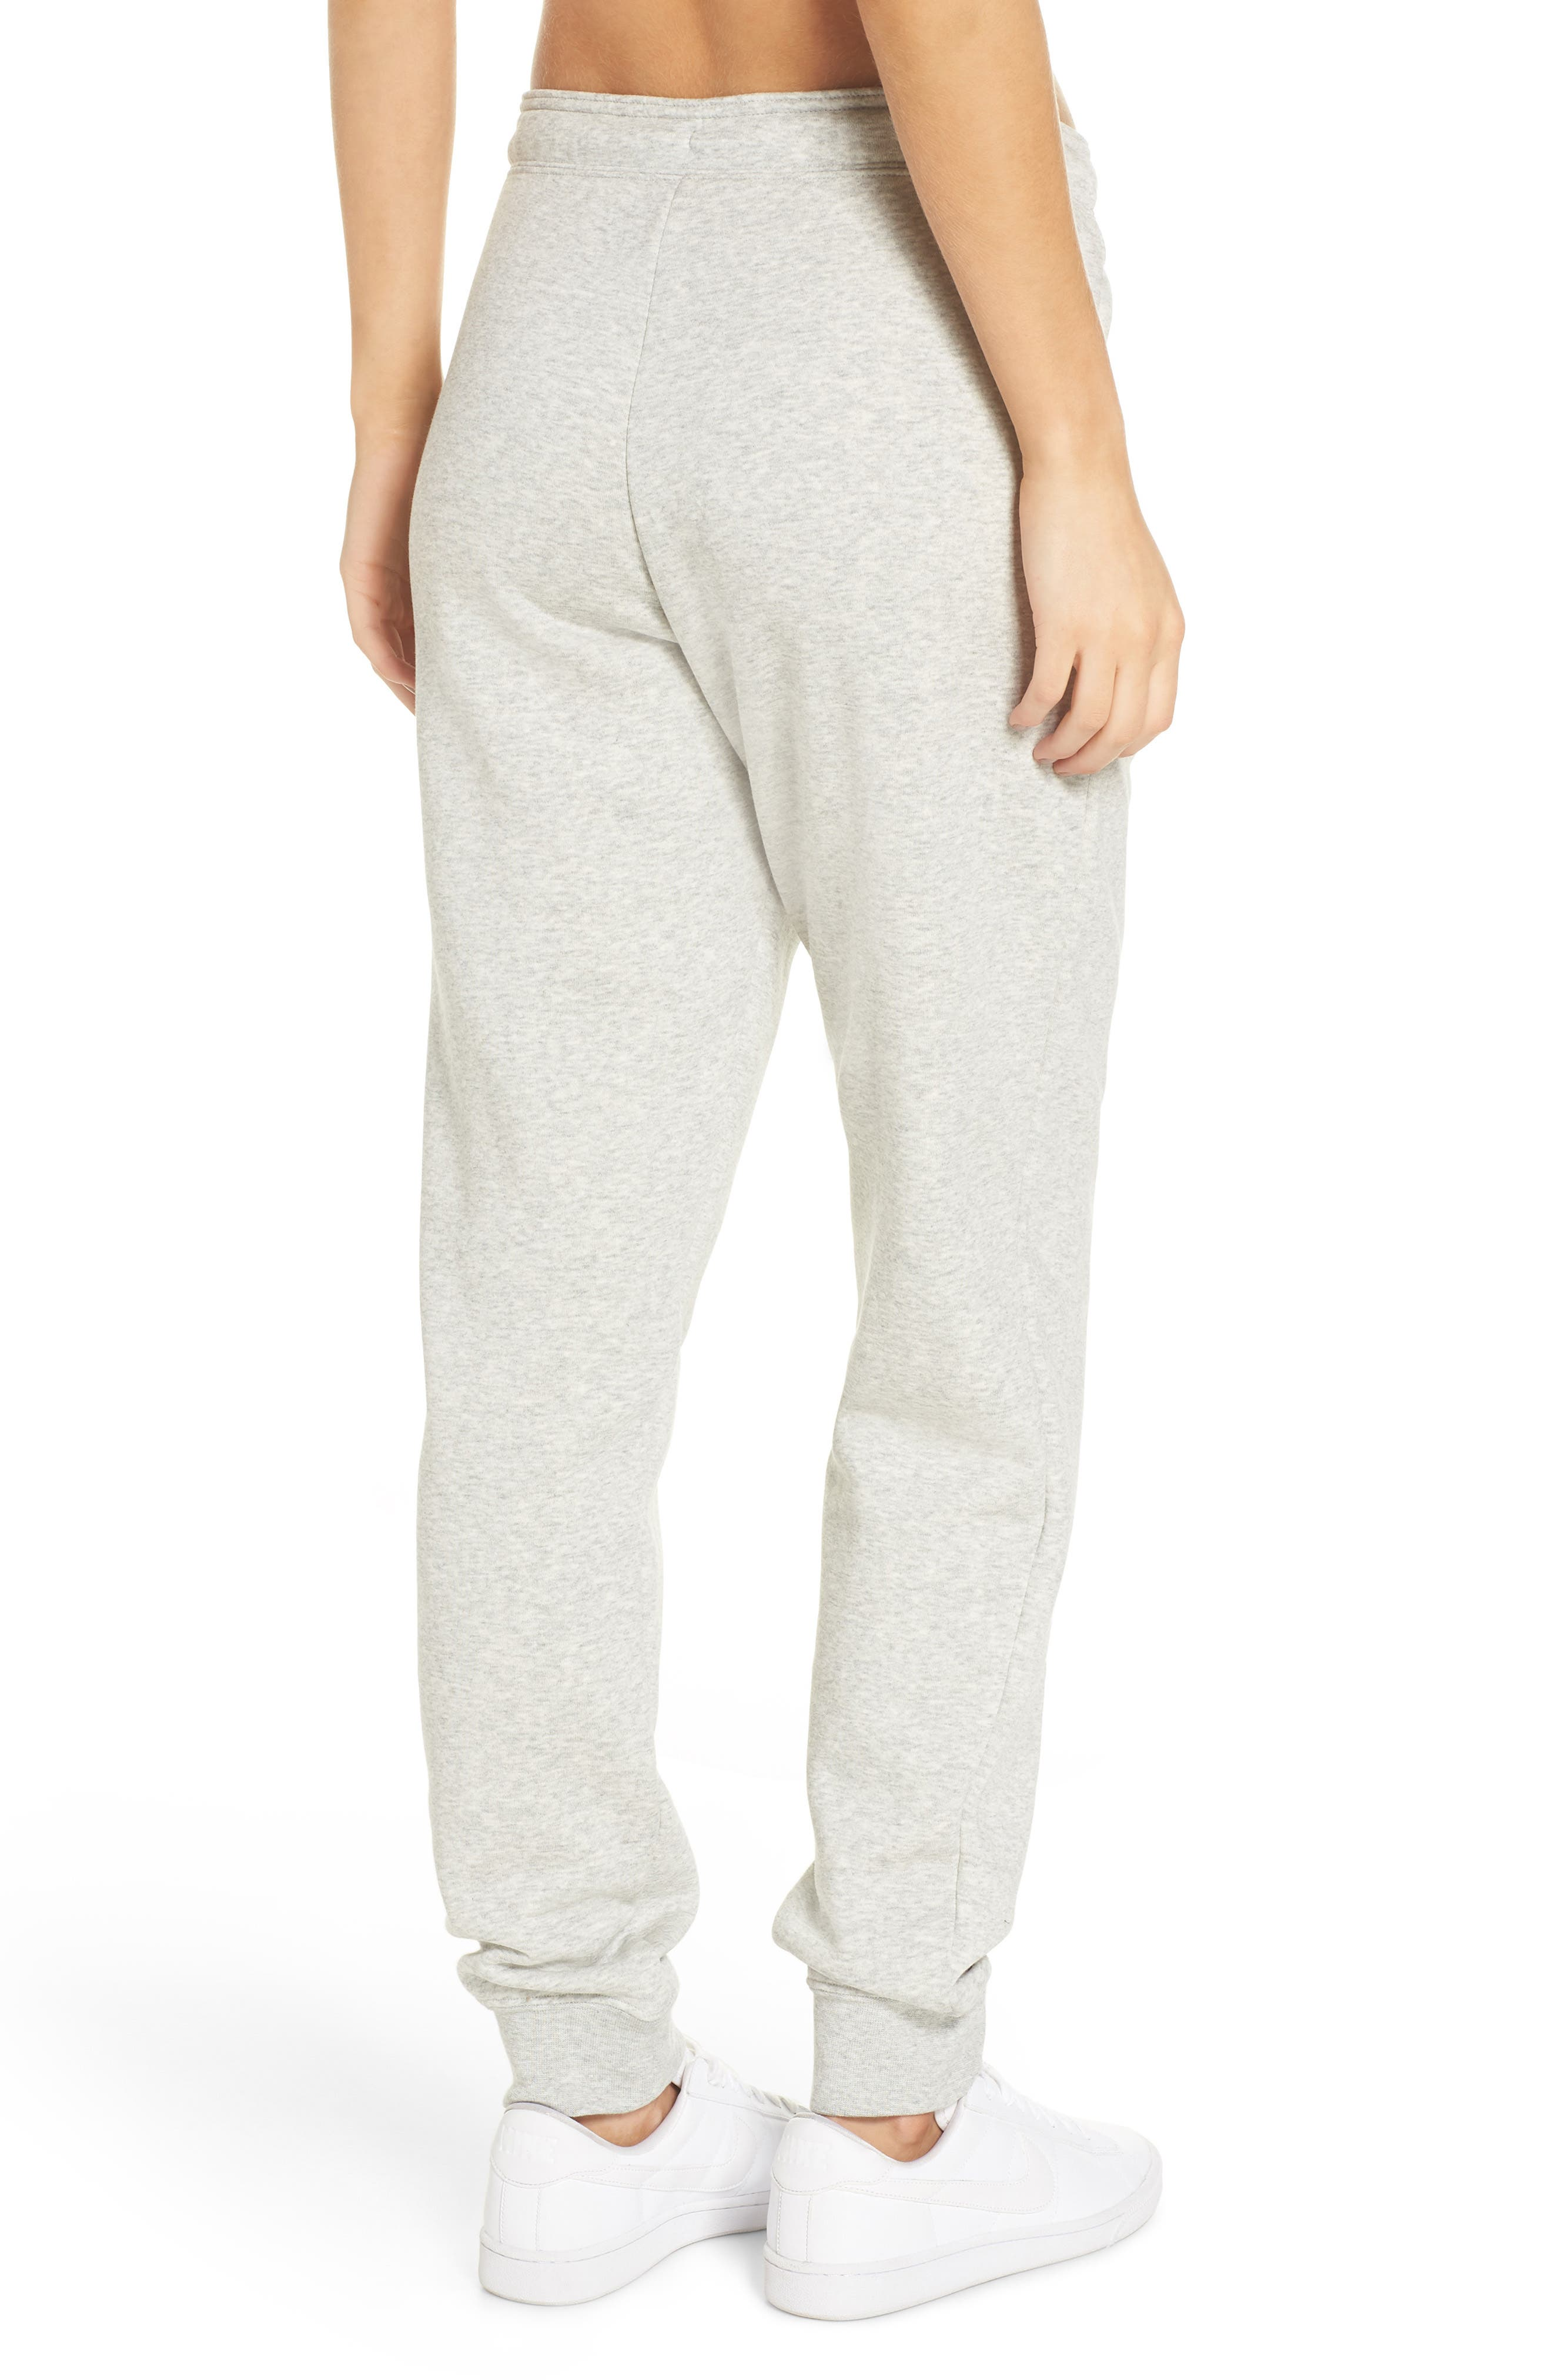 NIKE, Sportswear Rally Jogger Pants, Alternate thumbnail 2, color, GREY HEATHER/ PALE GREY/ WHITE